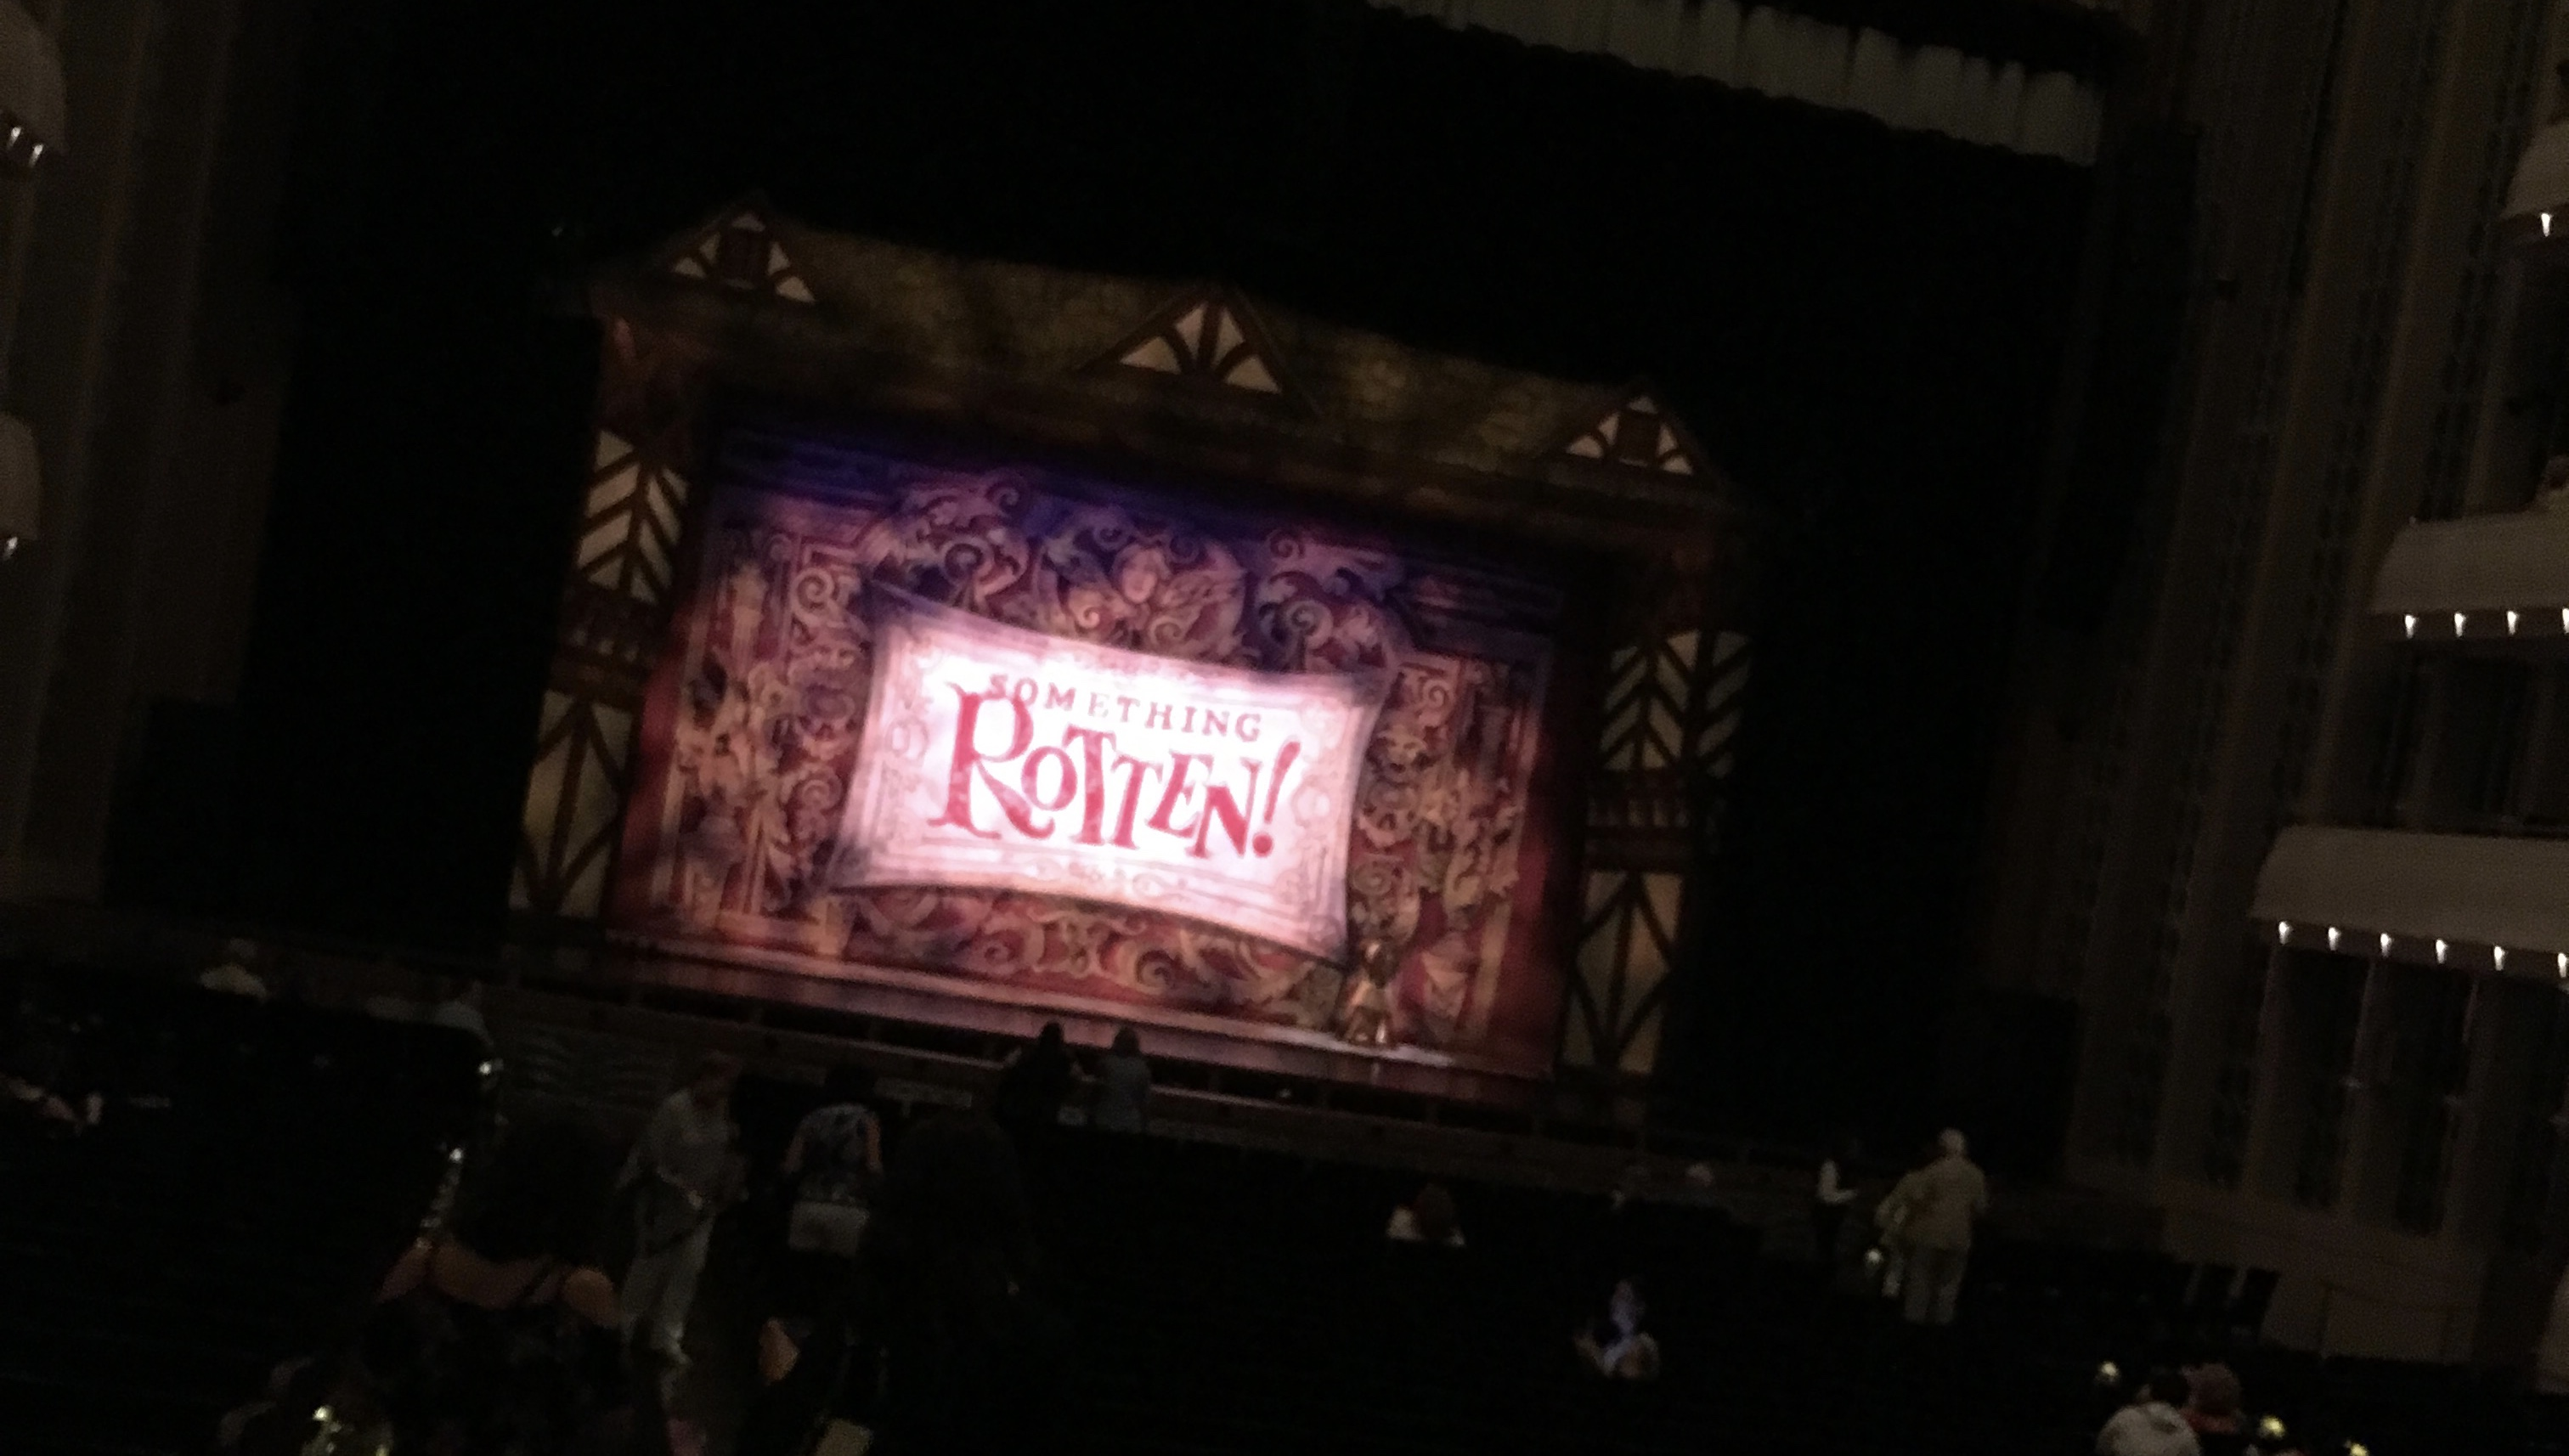 Regional Roundup: Top New Features This Week Around Our BroadwayWorld 8/18 - EVITA, SOMETHING ROTTEN, and More!